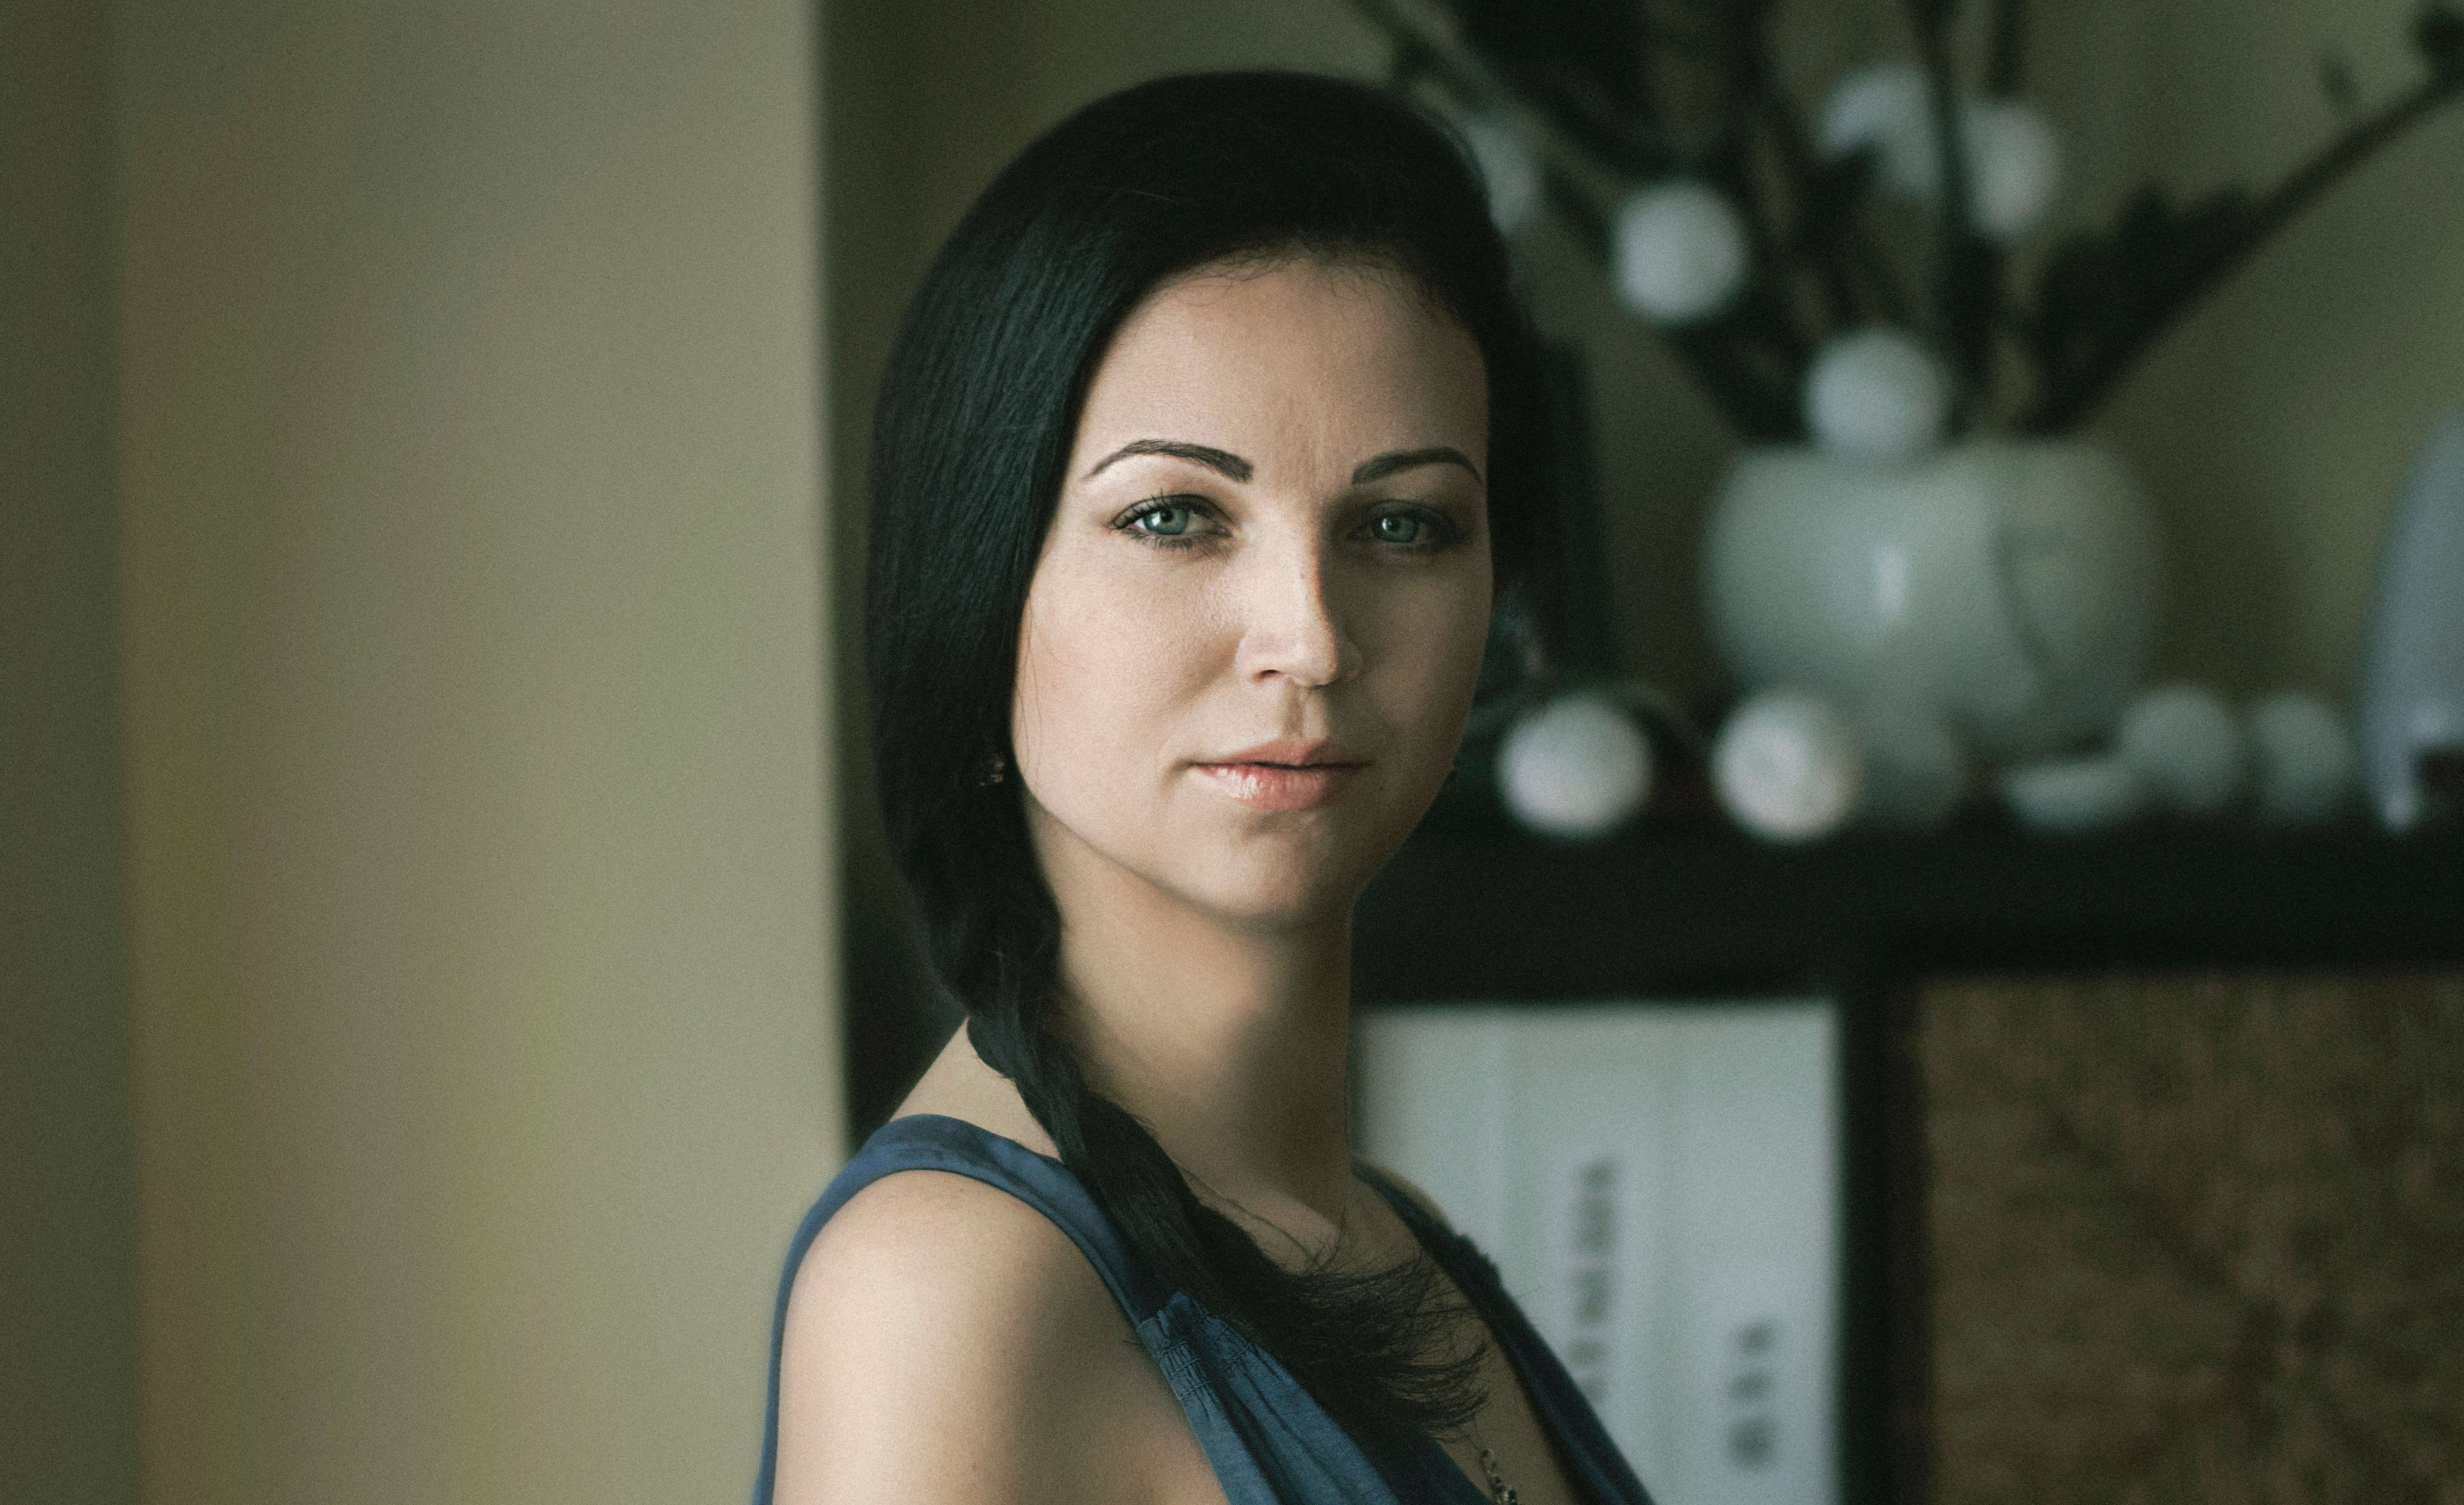 Image of a portrait of a woman using natural window light to show indoor photography tips